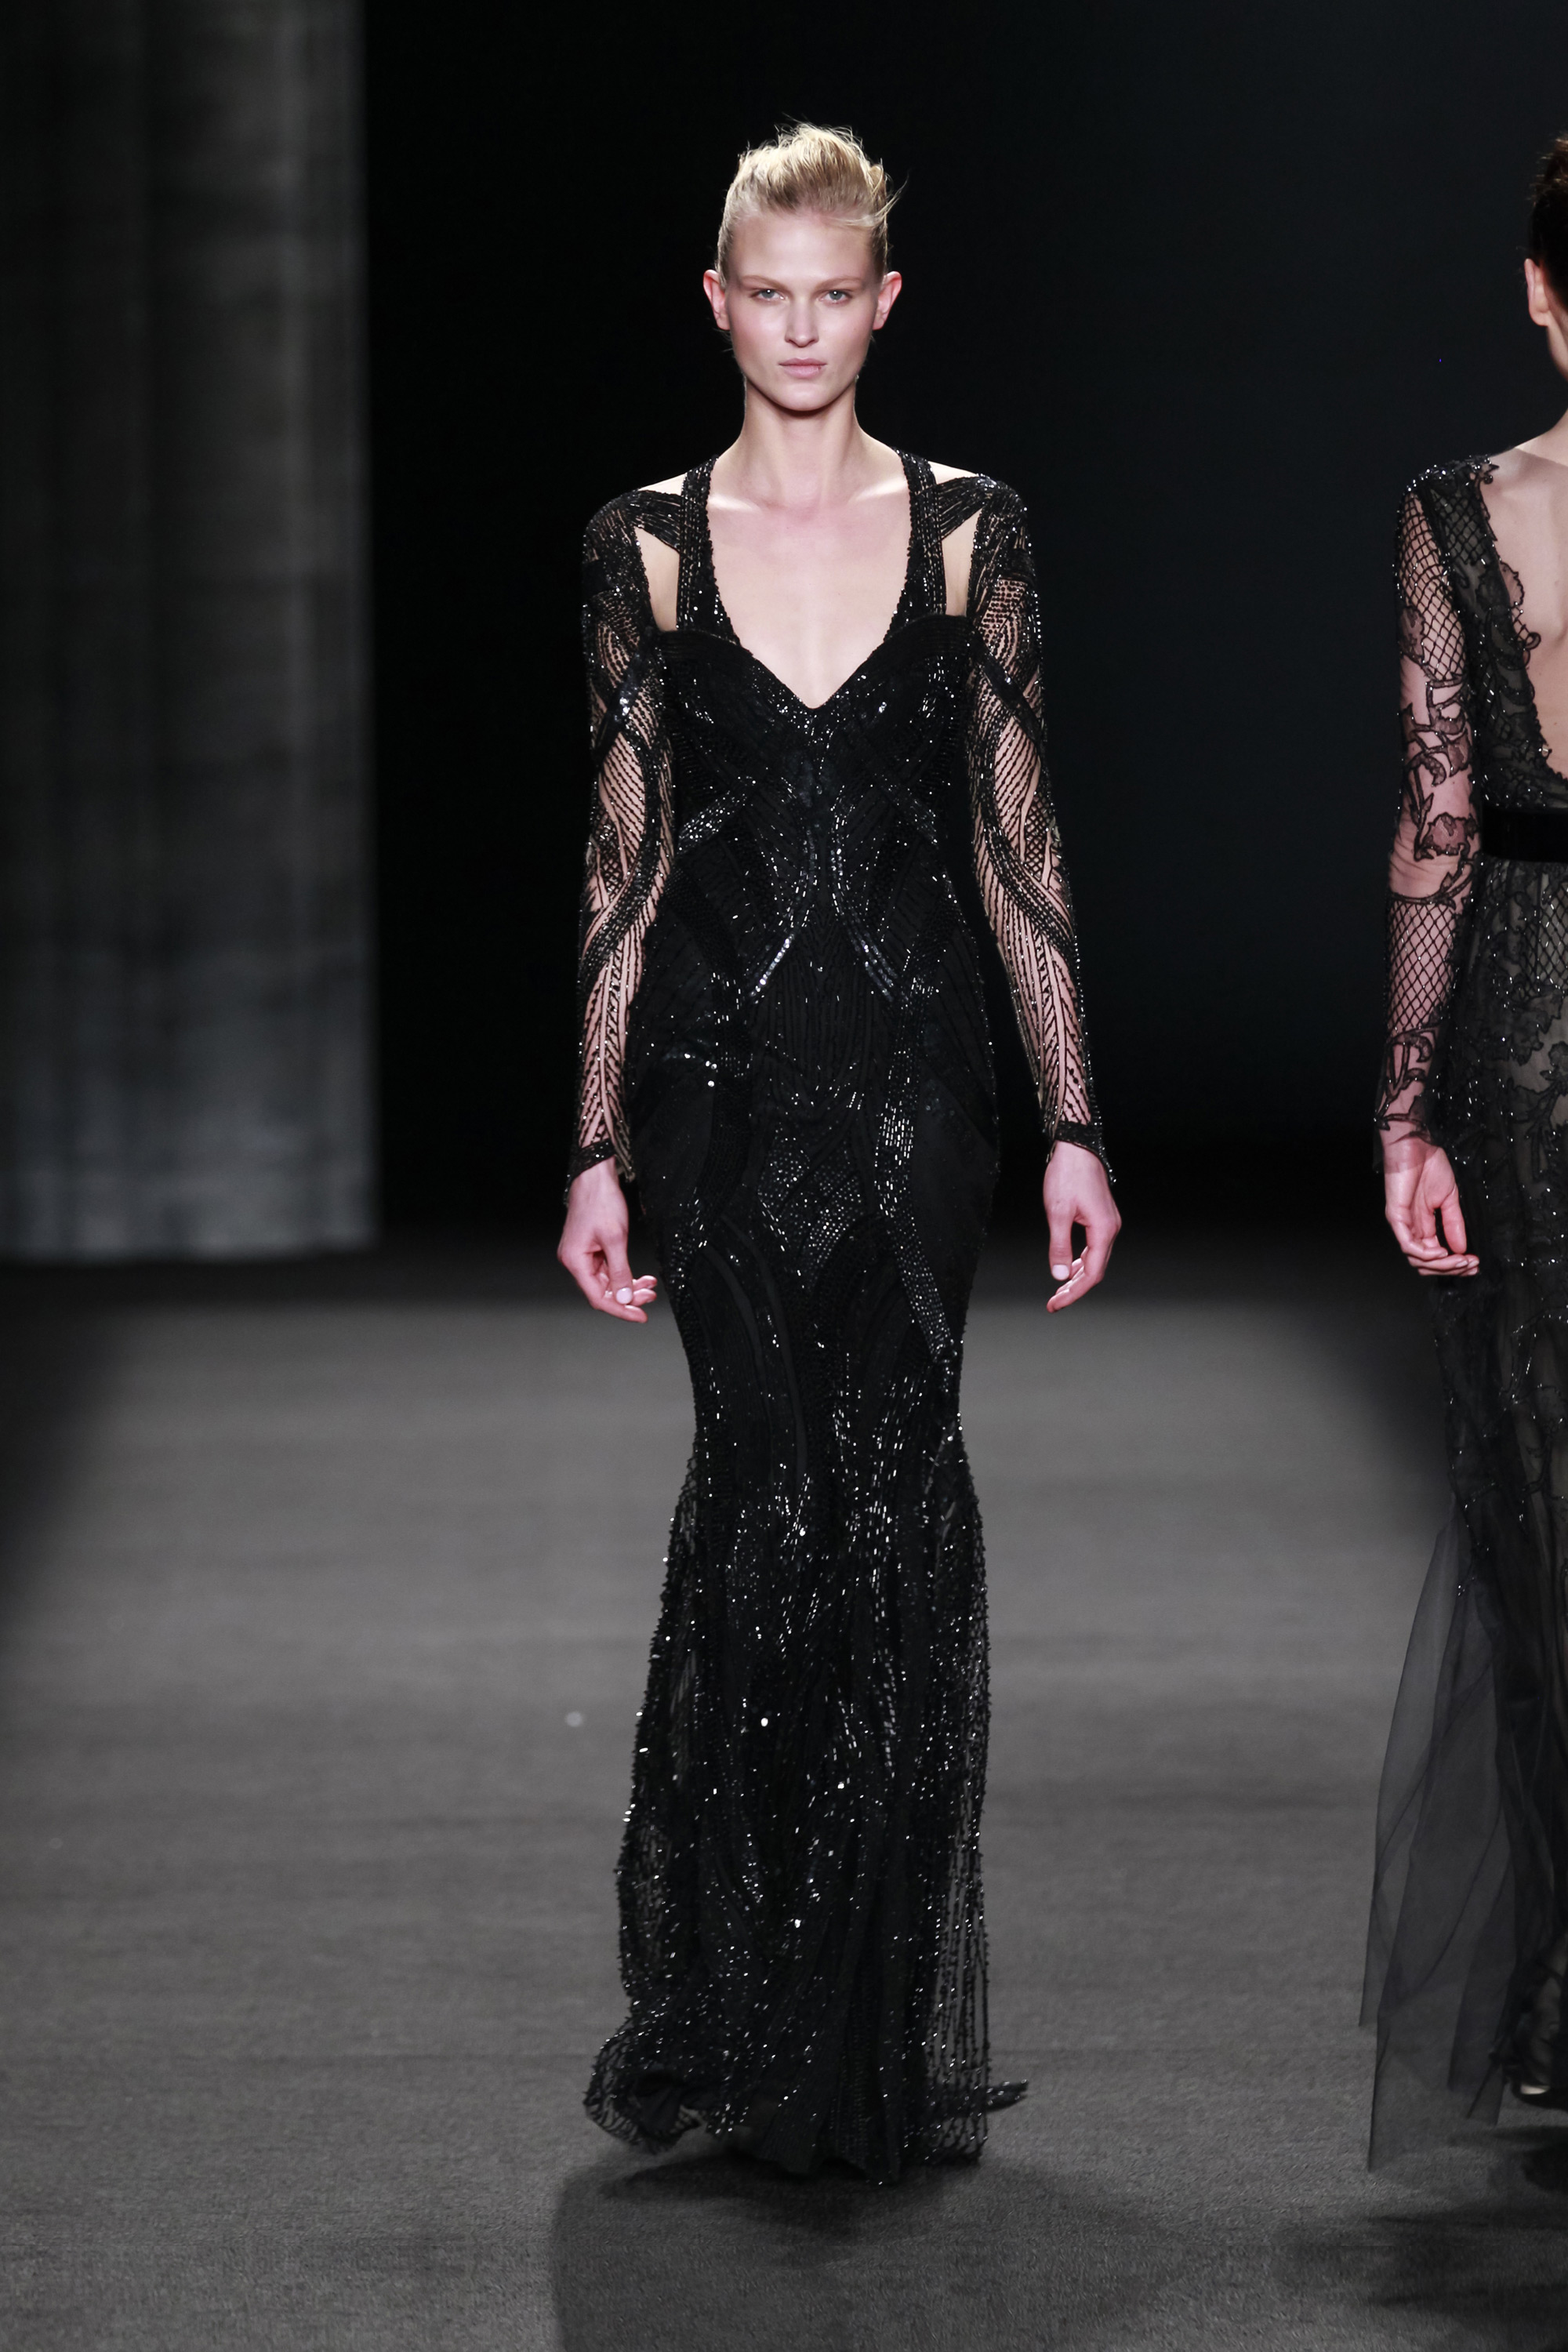 33_fw14dlr_lhuillier_358